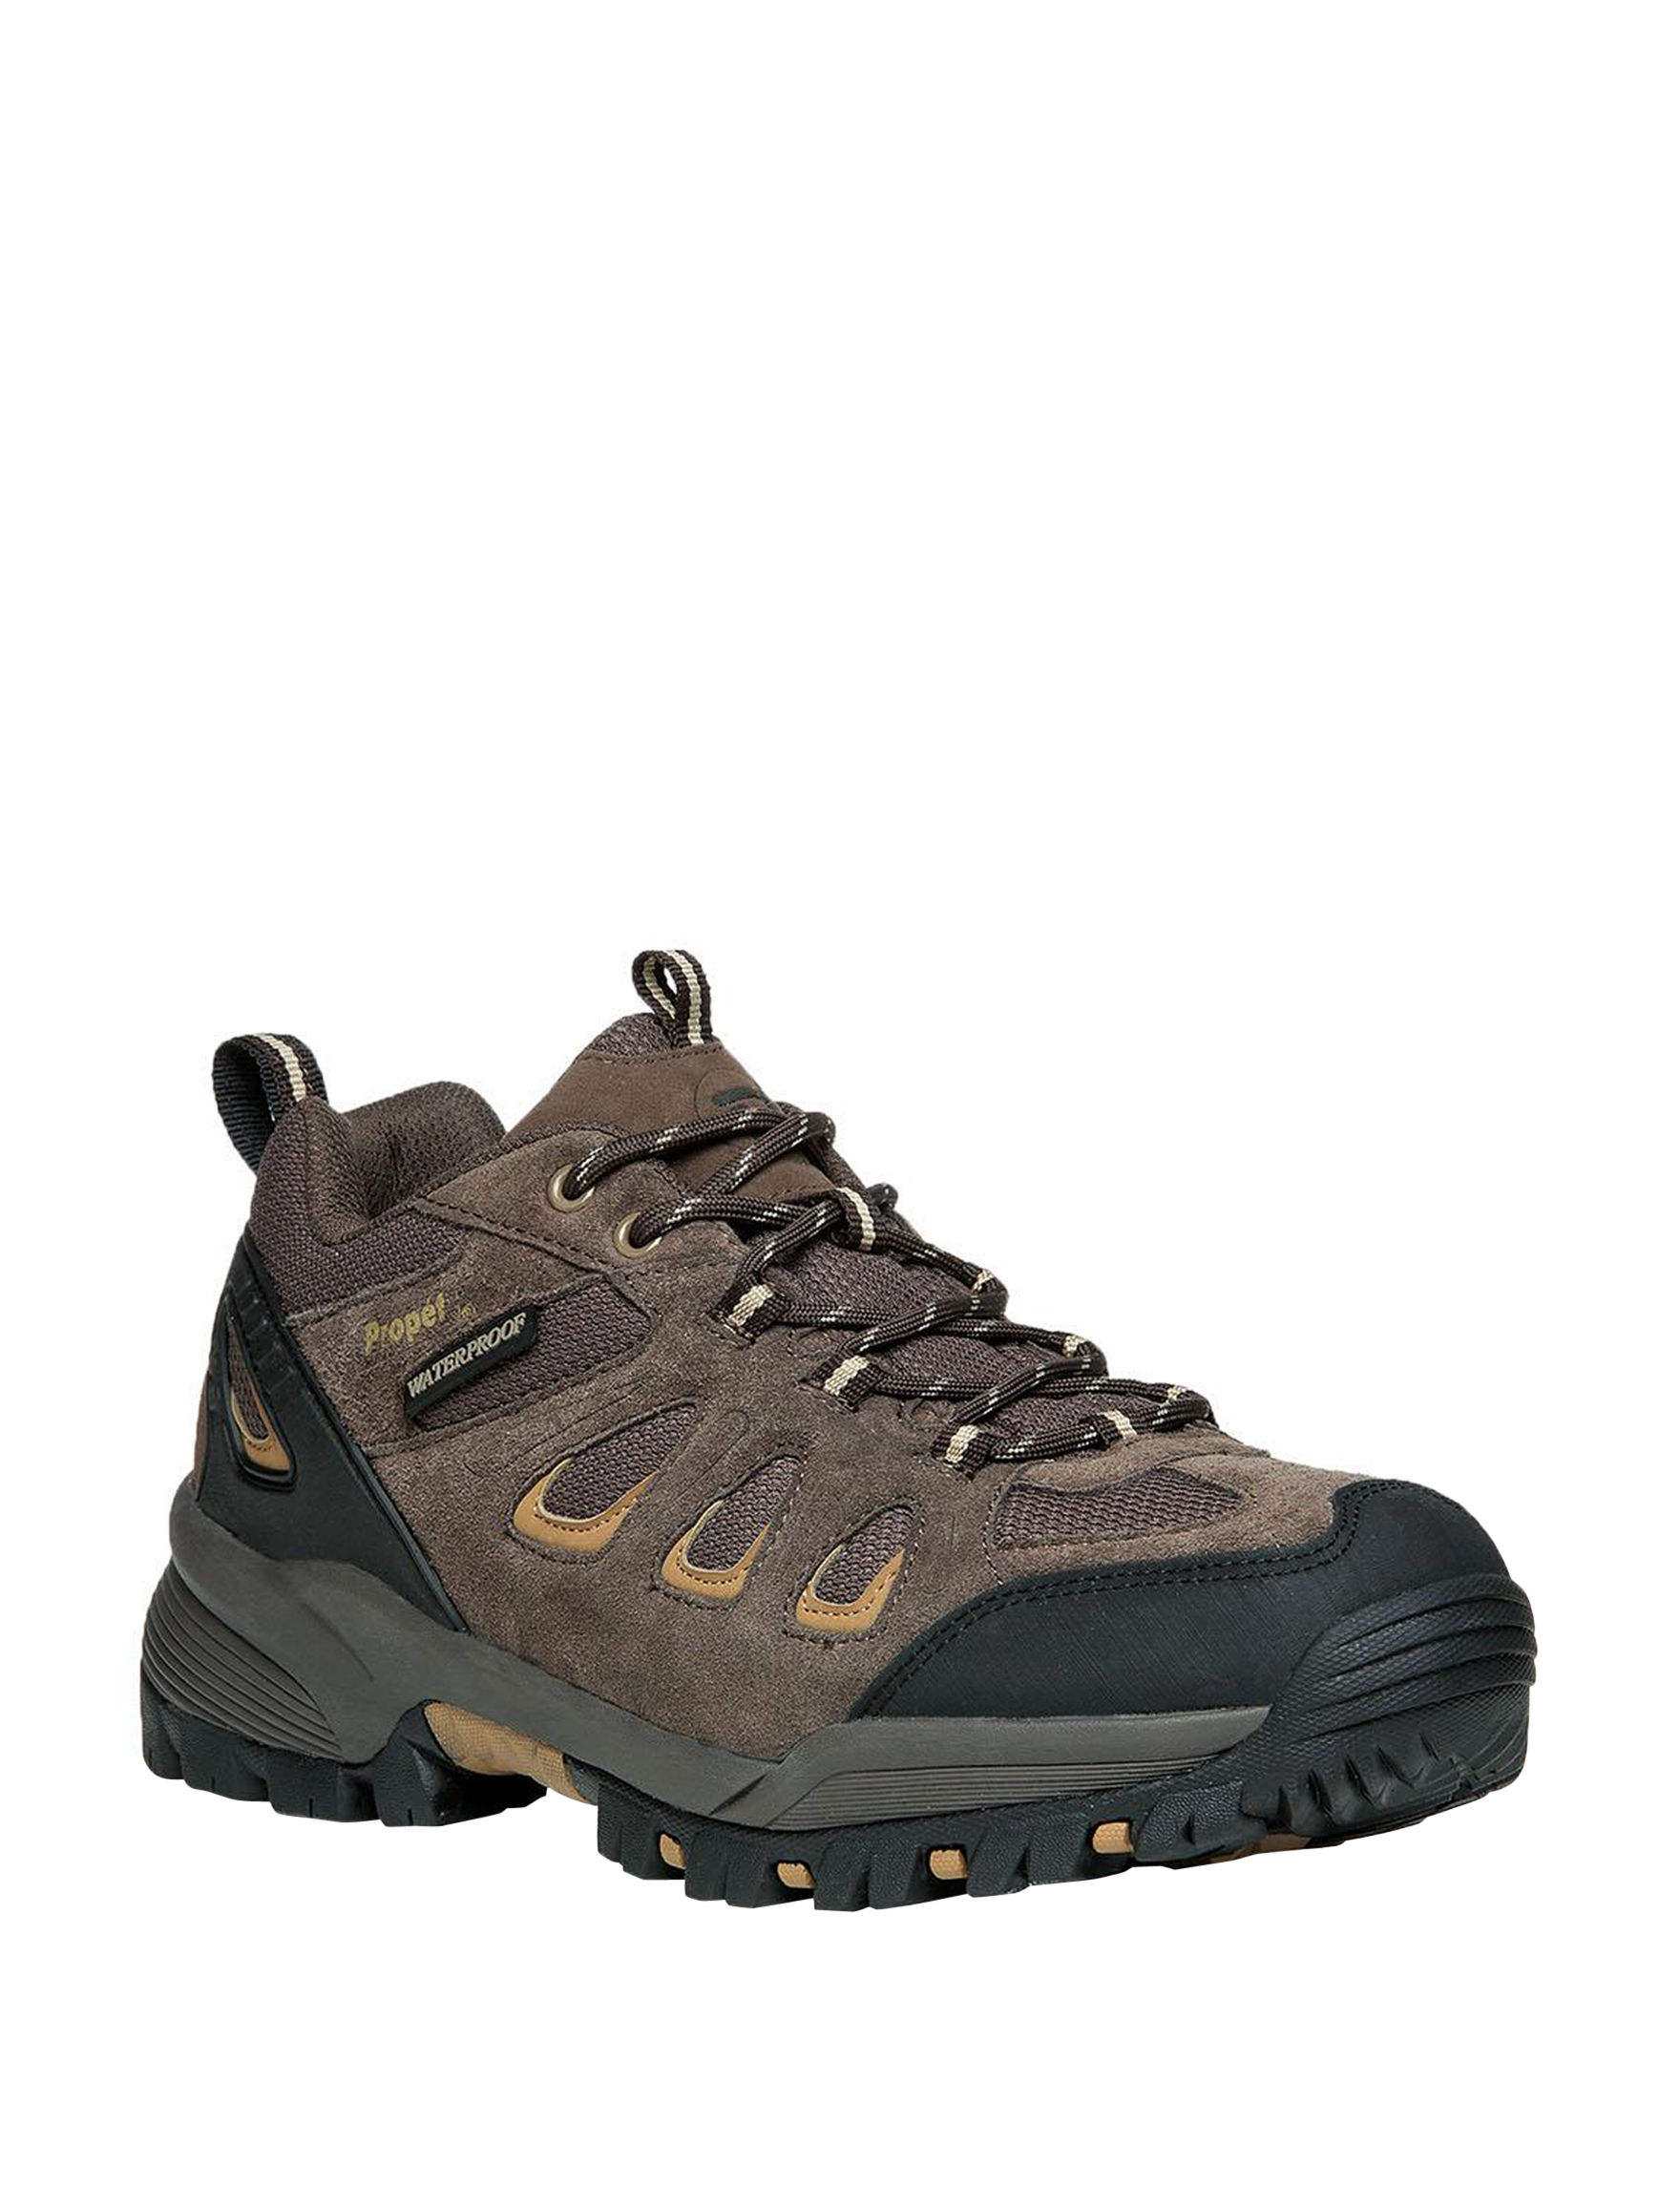 Propet Brown Hiking Boots